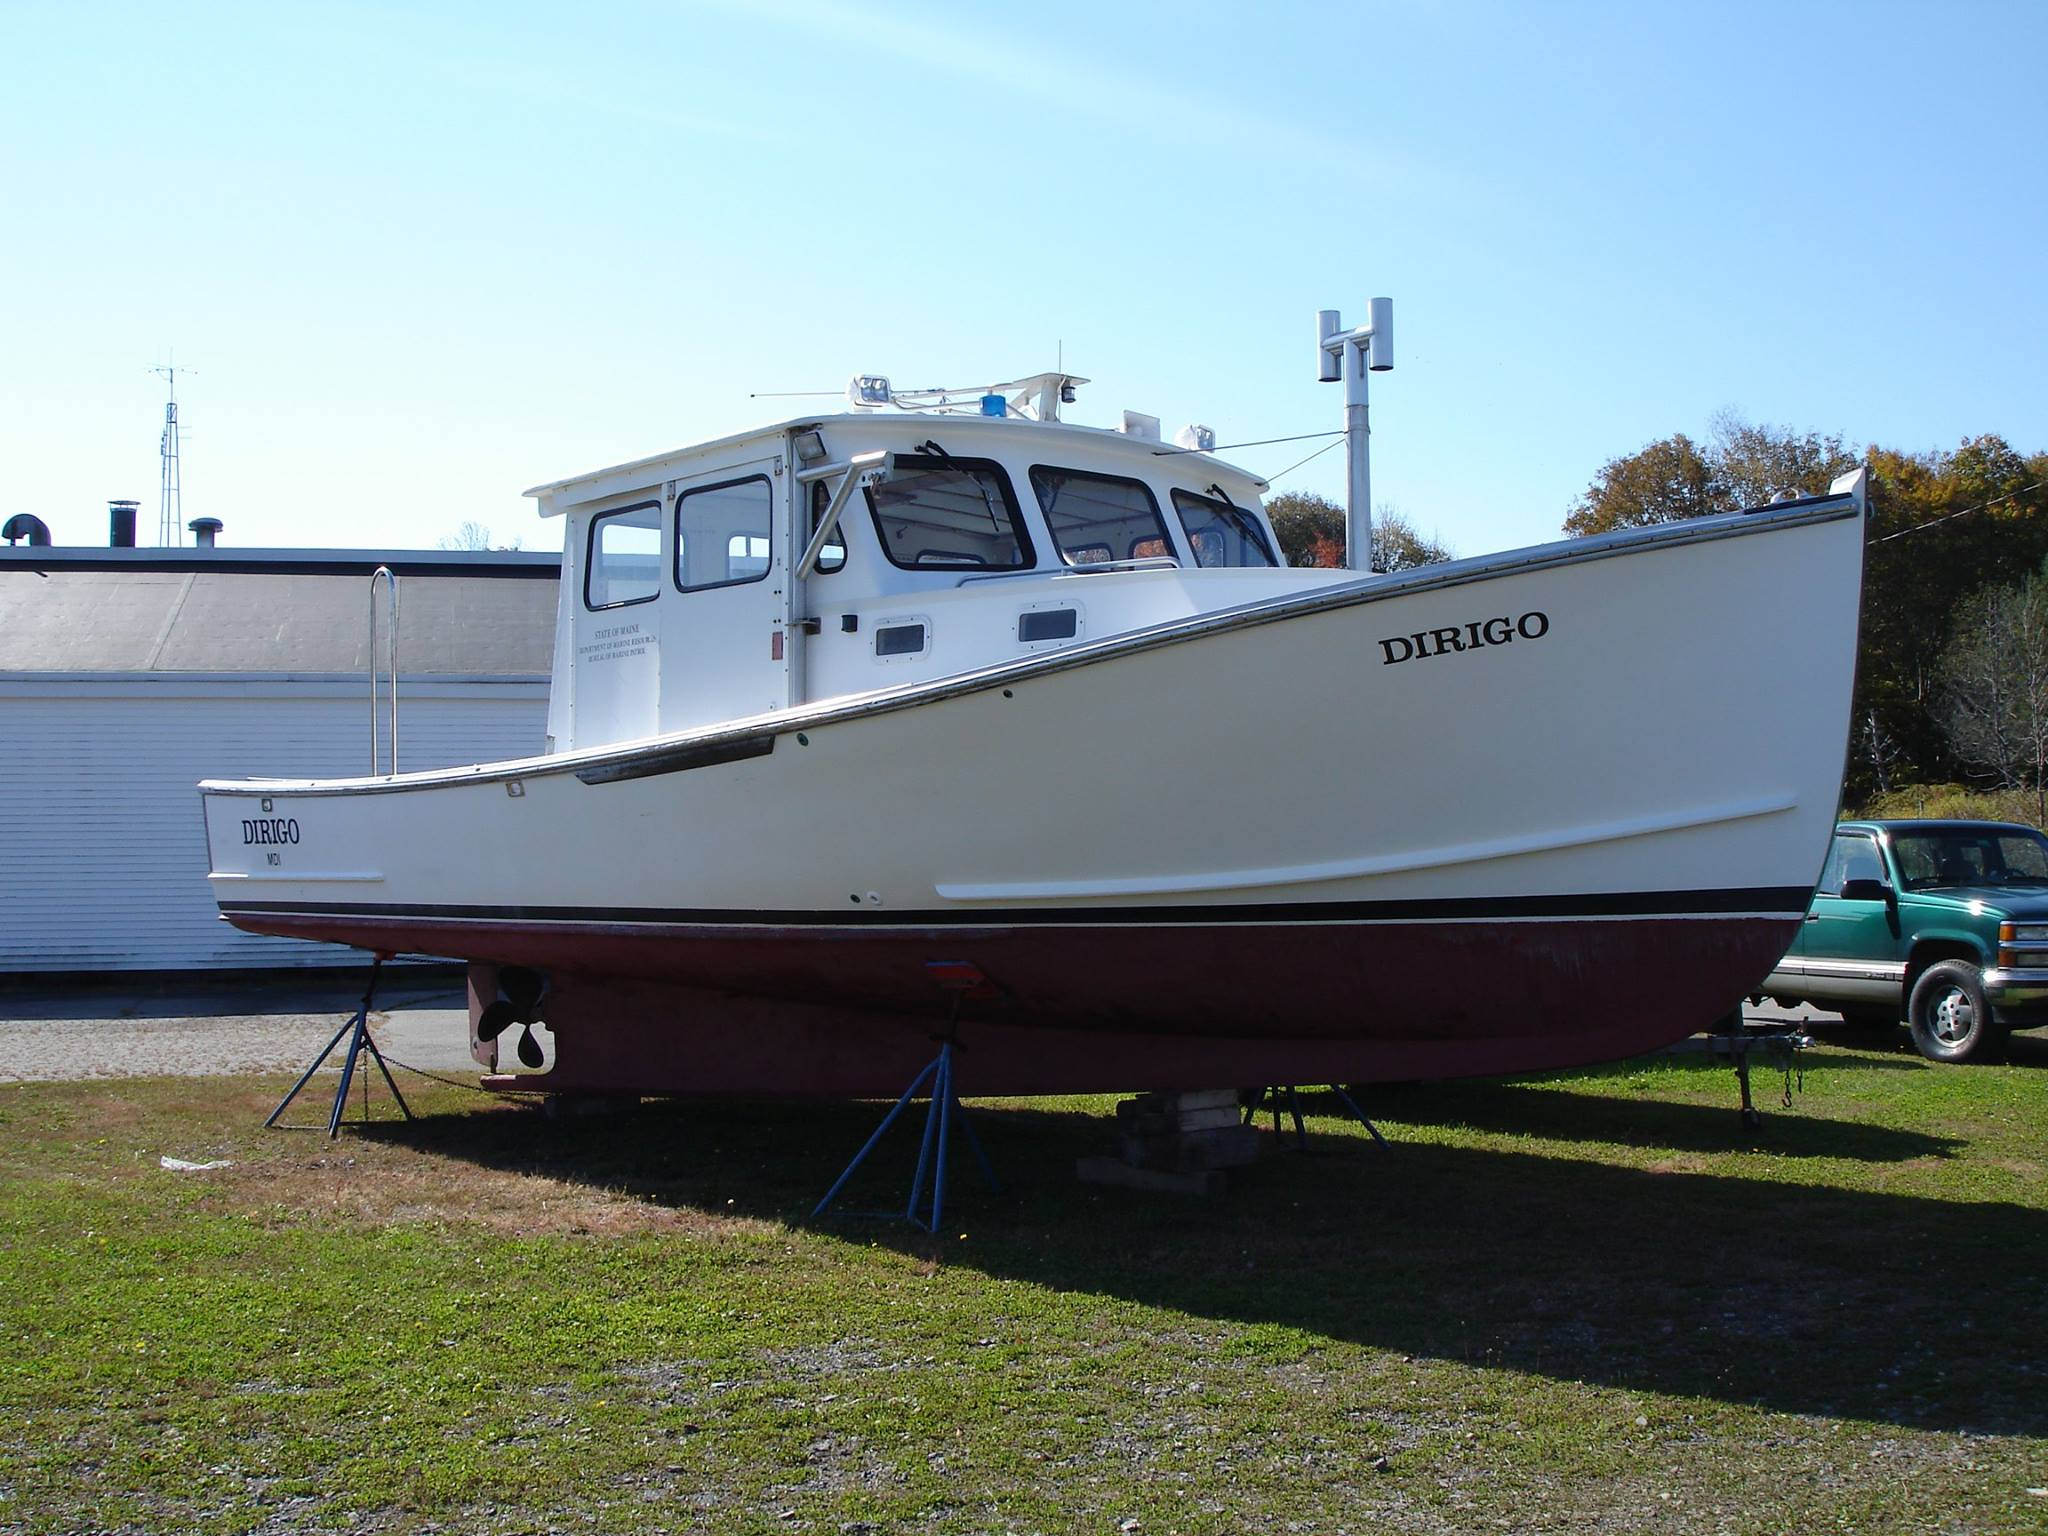 Midcoast Yacht & Ship Brokerage - Downeast Lobster Boats - Commercial Boats